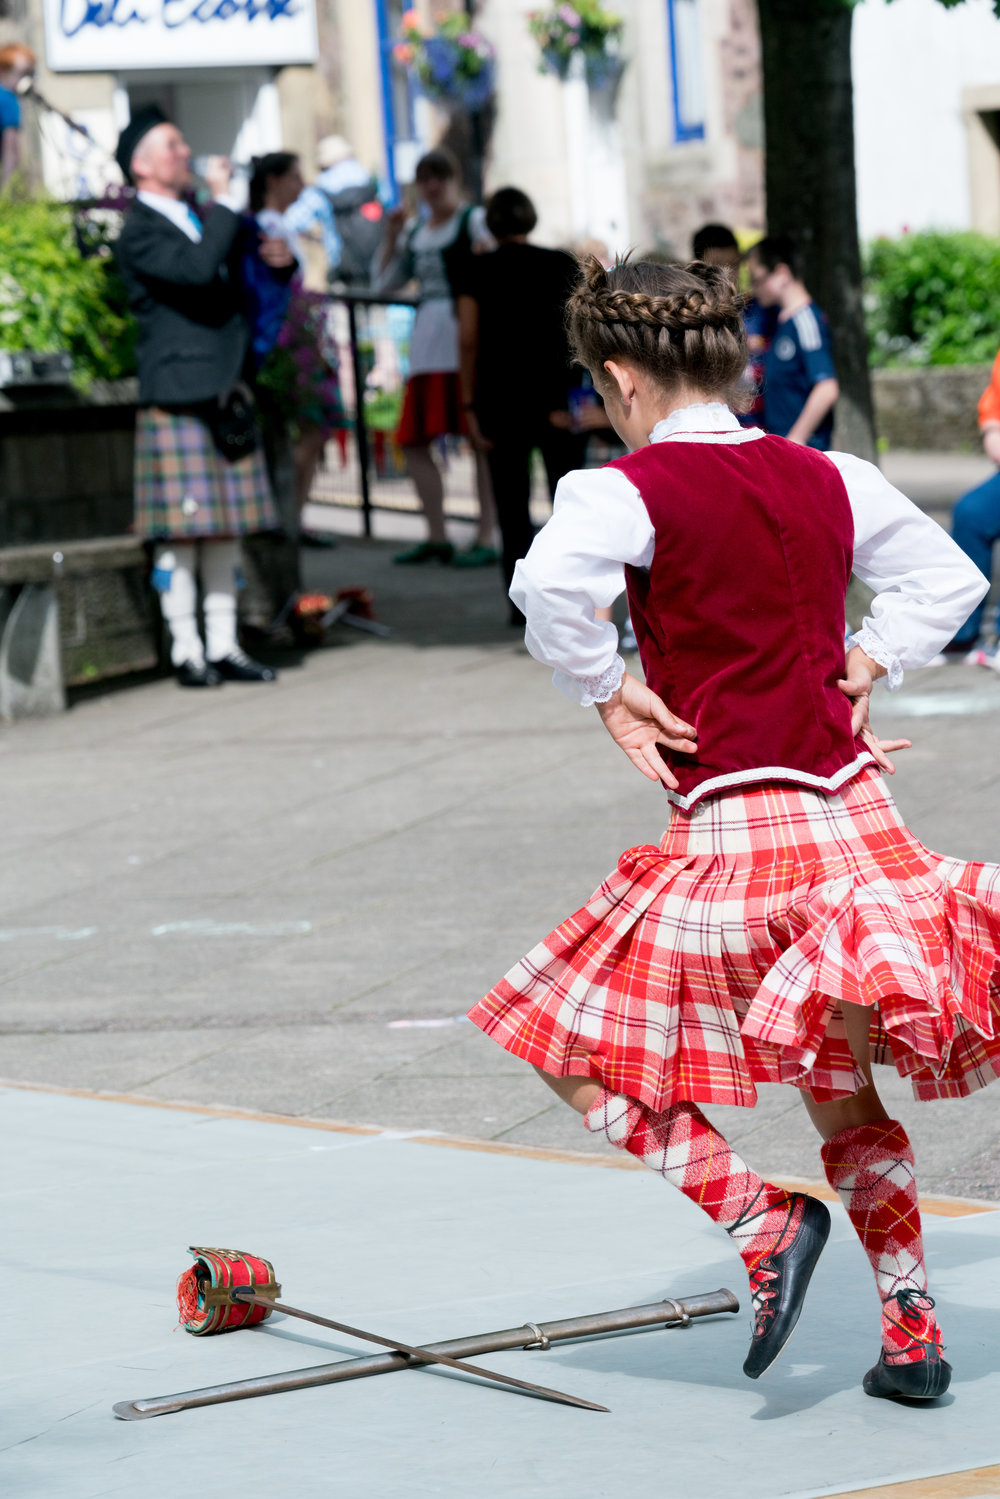 Dancing the Scottish sword dance